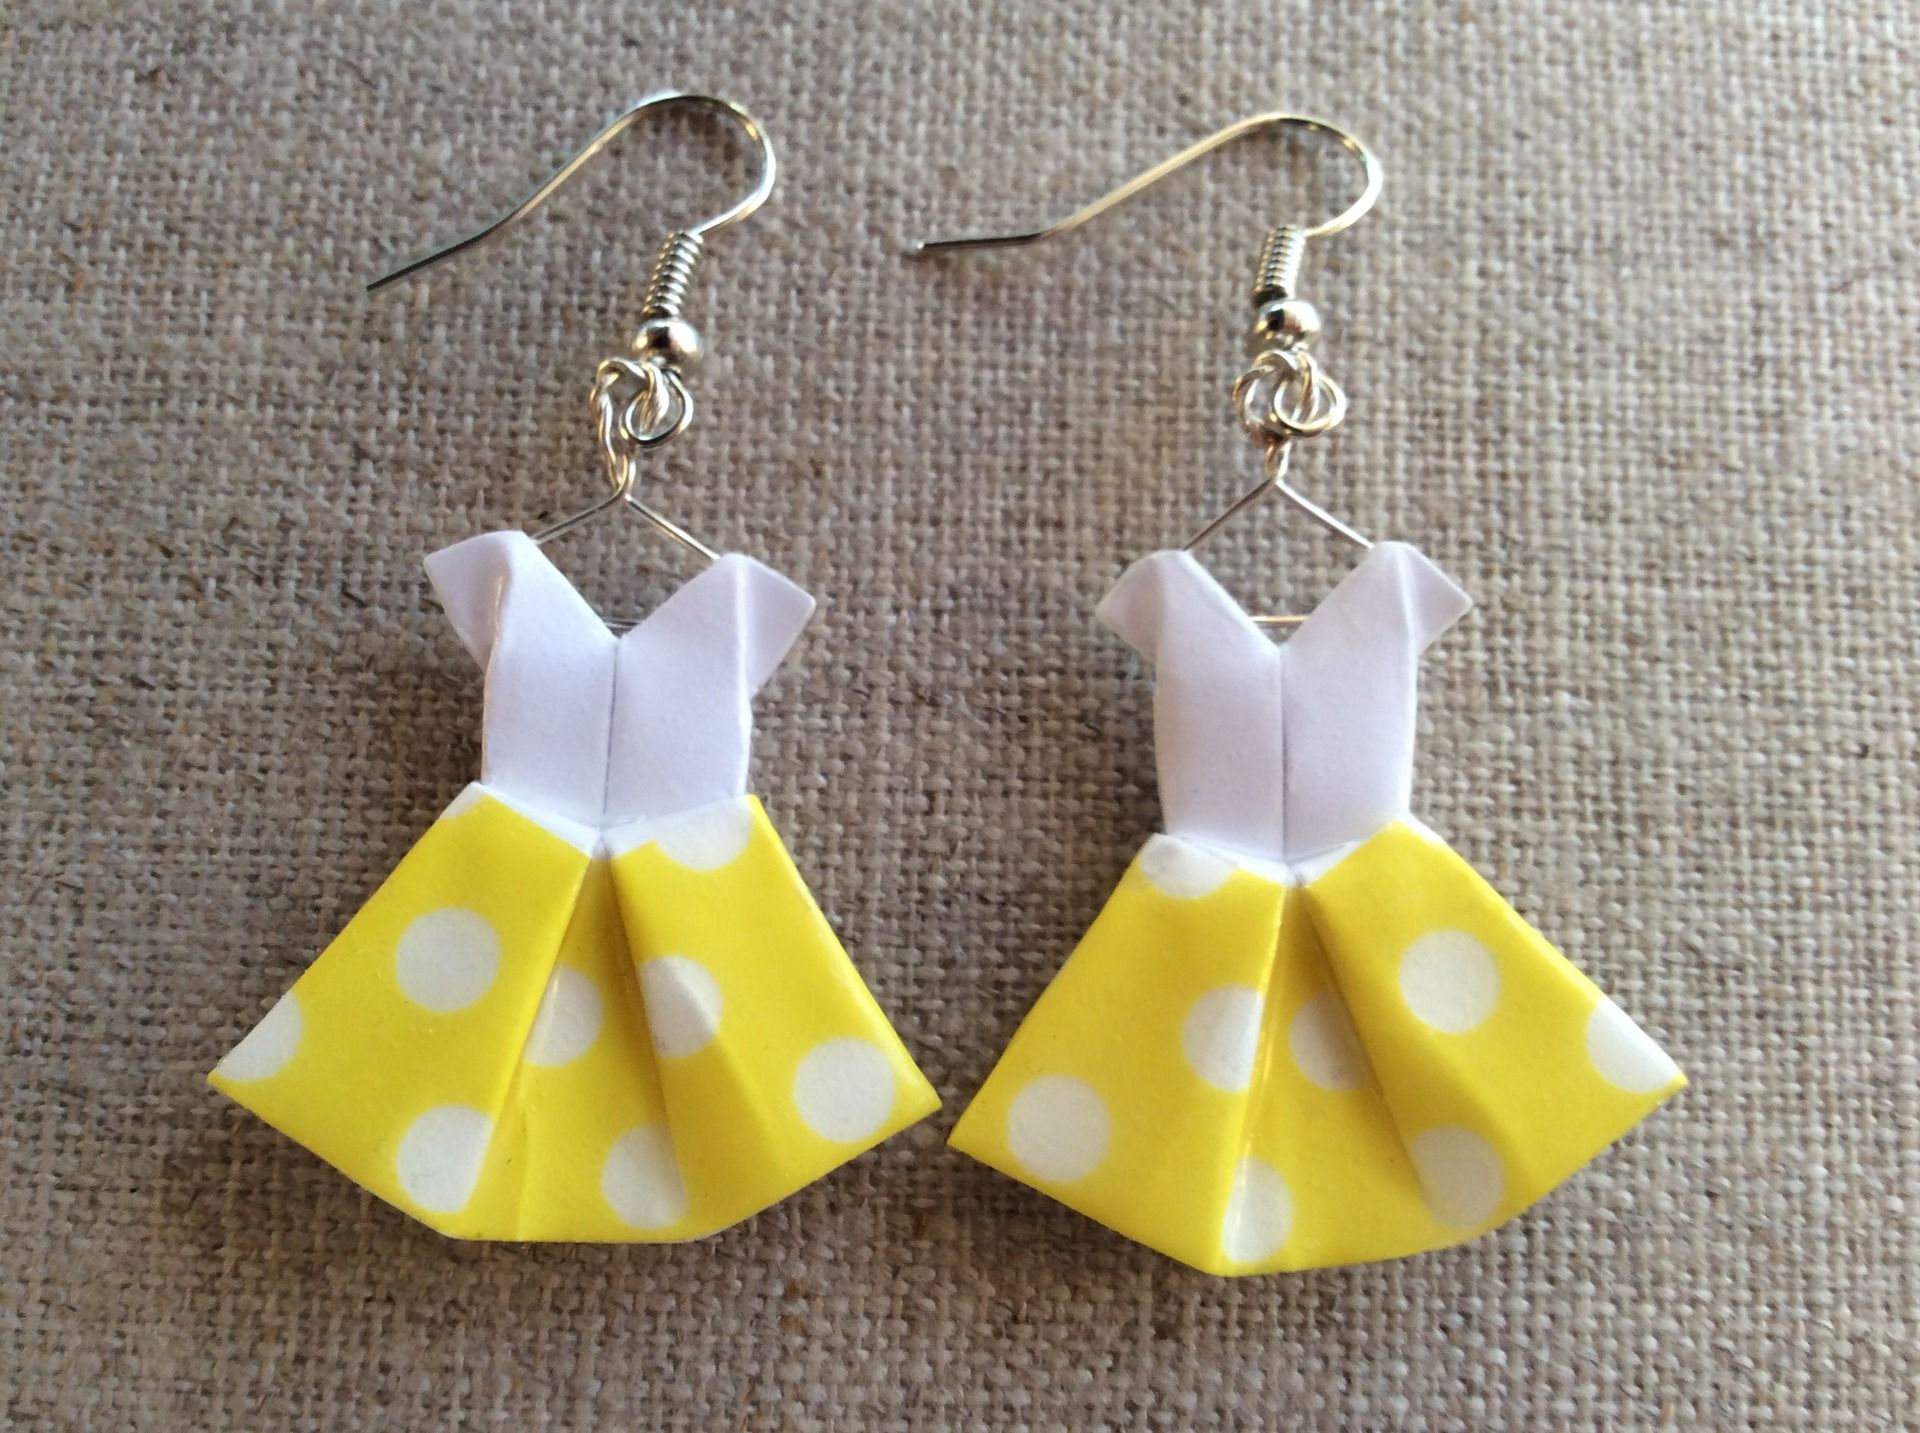 Boucles d 39 oreille robes en origami washi tape jaune - Robe en origami ...